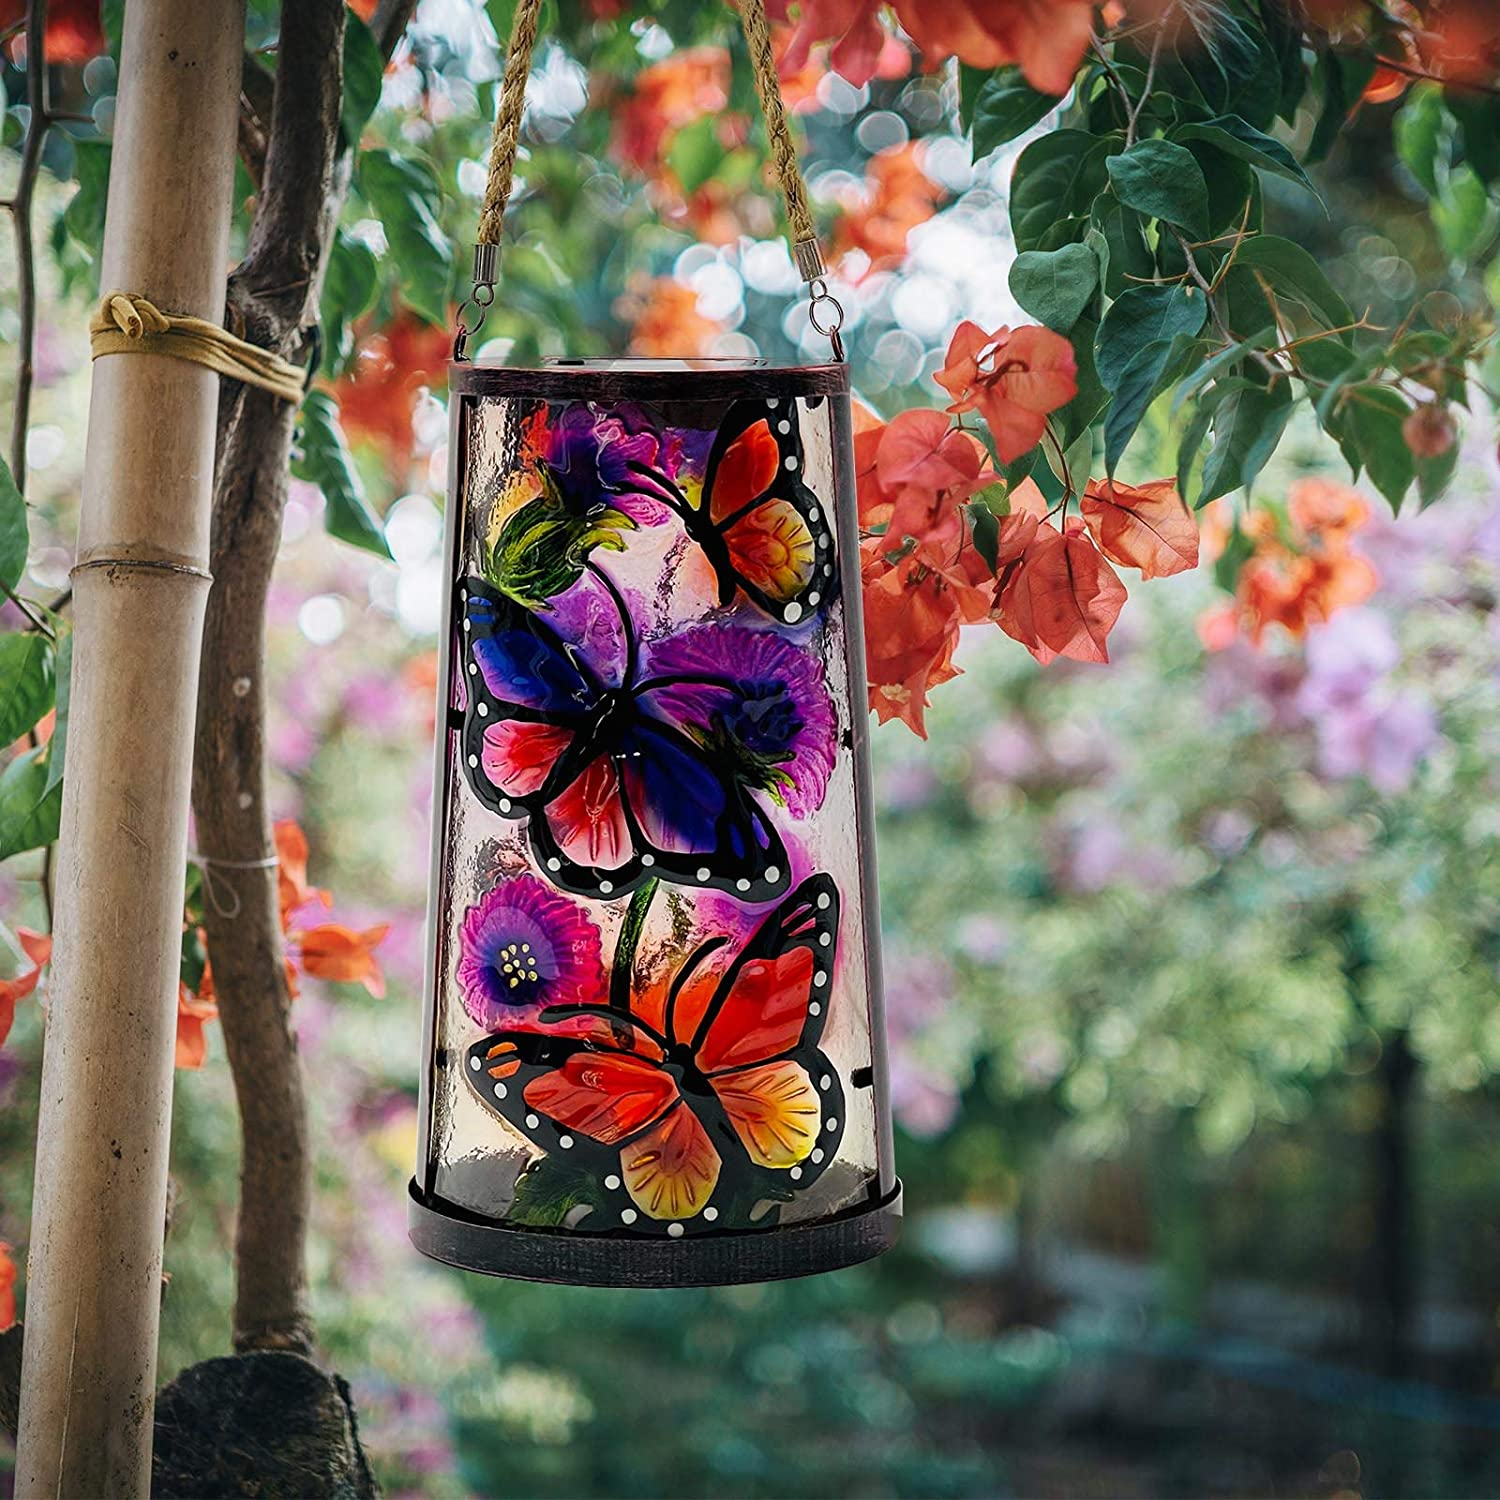 Opening large release sale SUBOLO Hanging Solar Lantern Outdoor Popular product LED Decorative Butt